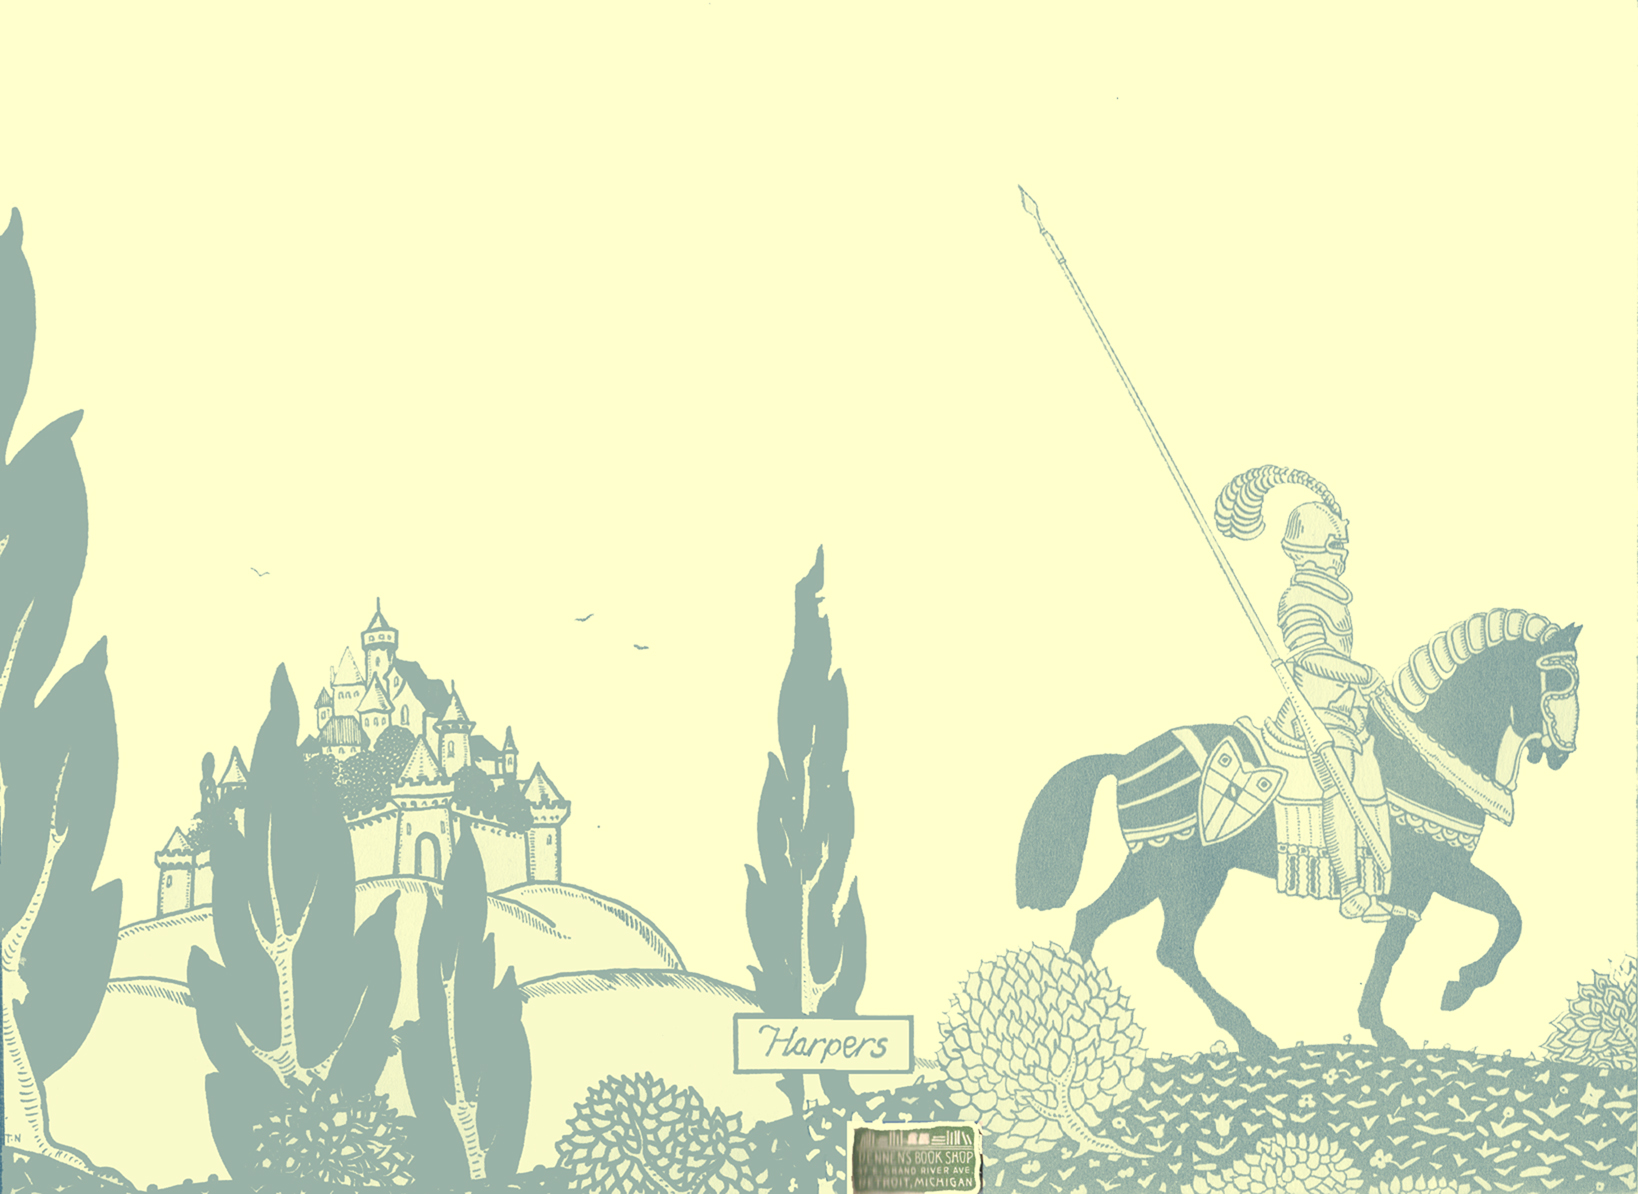 Blues and white art-deco illustration of a knight in armour on a horse, with a long jousting lance at his side.  Behind him is a walled town, with stylized trees, shrubs, and a flowered ground.